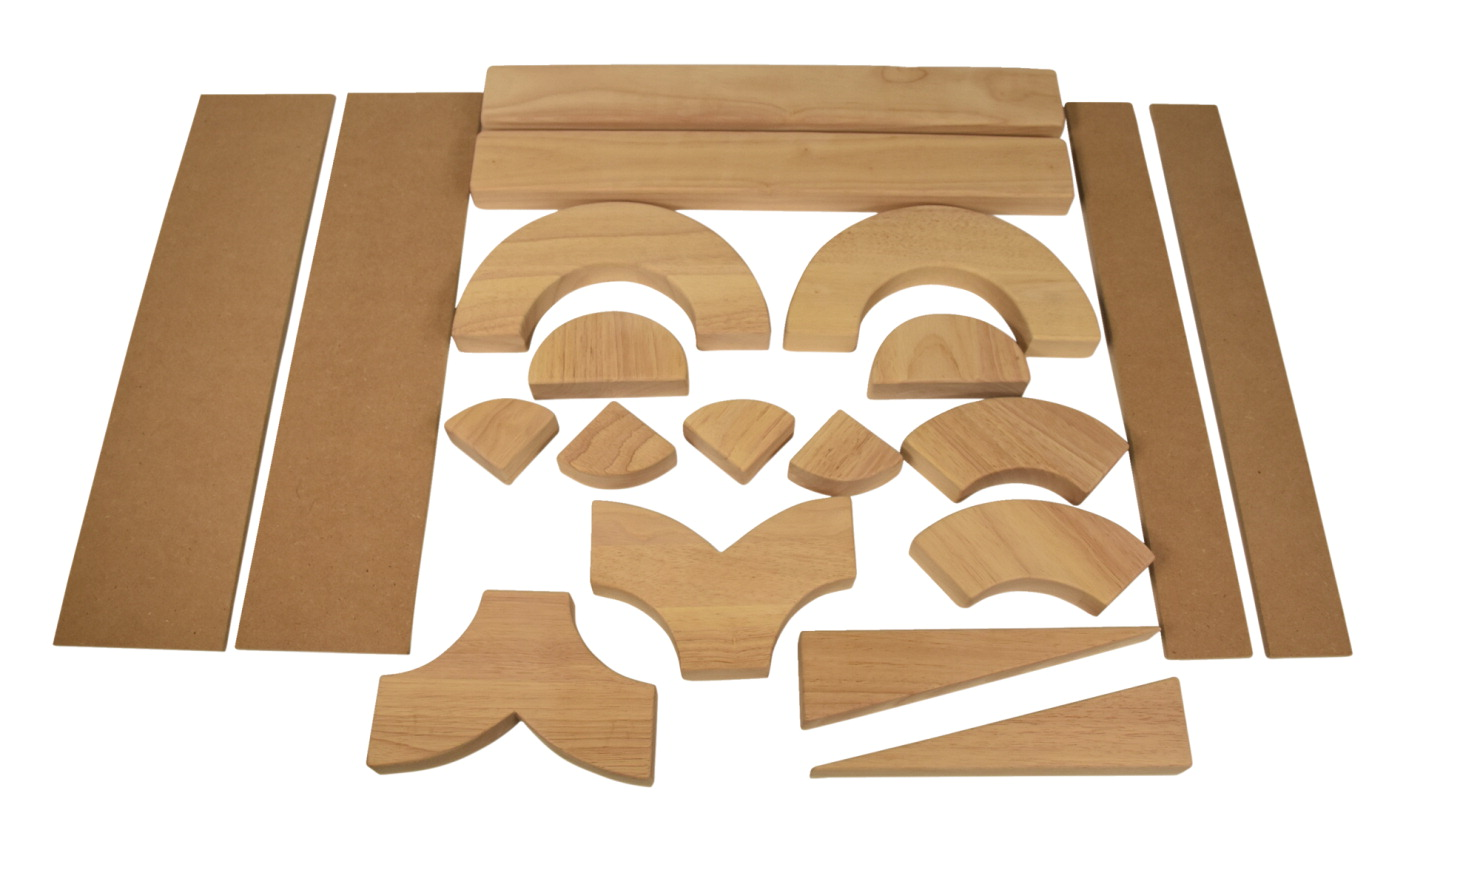 Childcraft Standard Unit Block Set, 20 Pieces